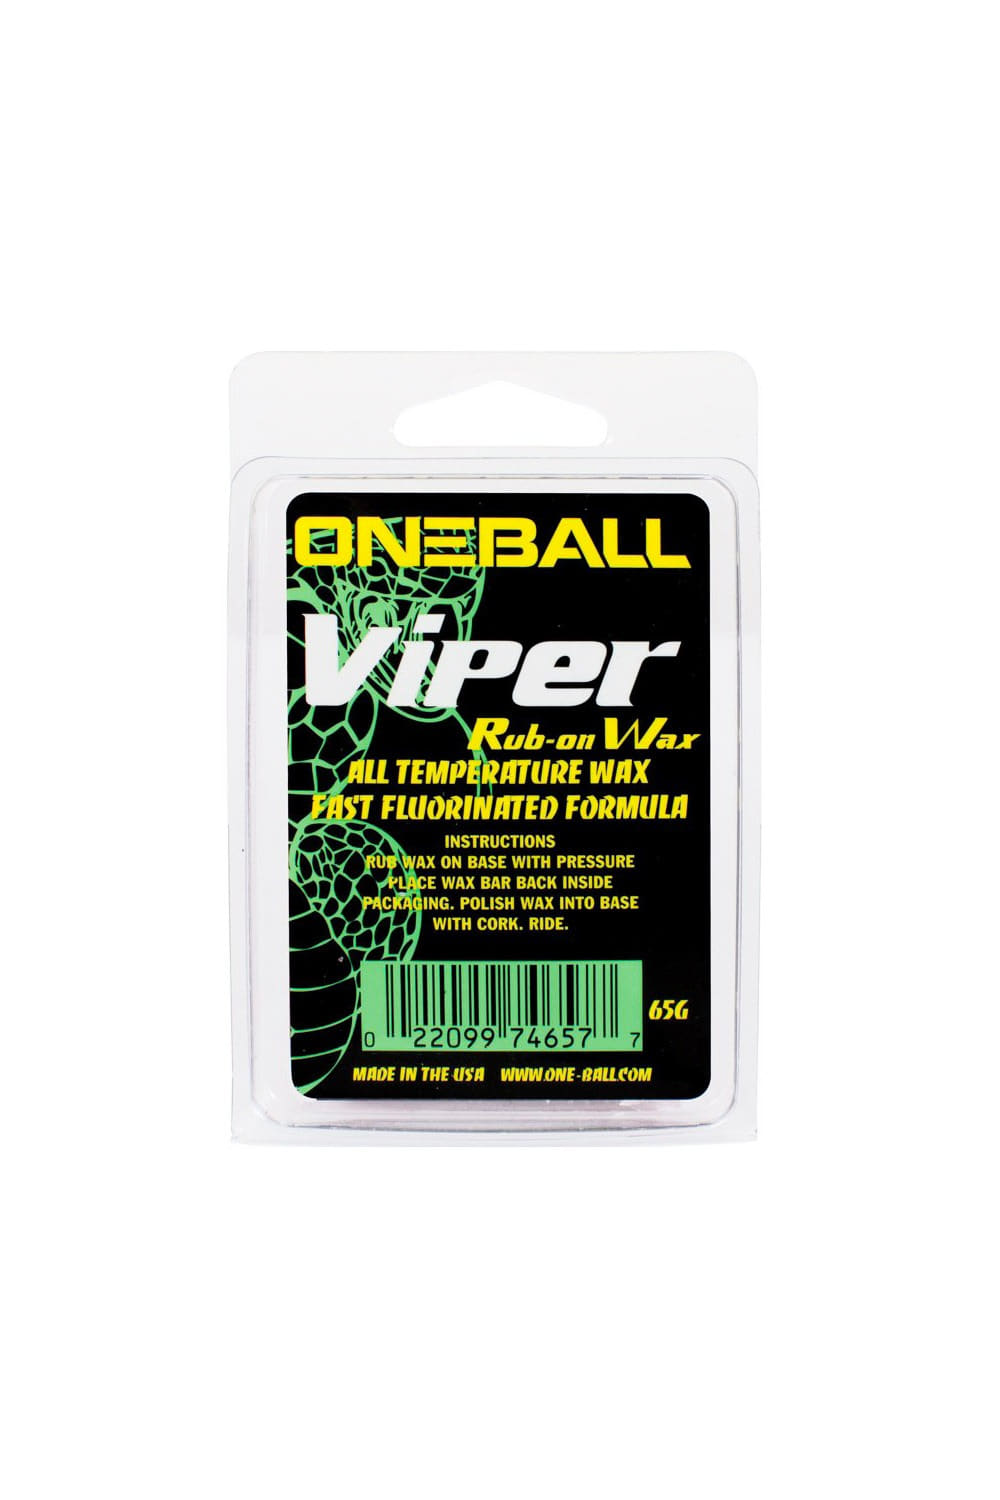 원볼 왁스_바이퍼 RUB ON 40g, W/CORK APP/ONEBALL VIPER RUB ON W/CORK APP/ONEBALL VIPER RUB ON W/CORK APP/40G_HOB71300_DHOB71300